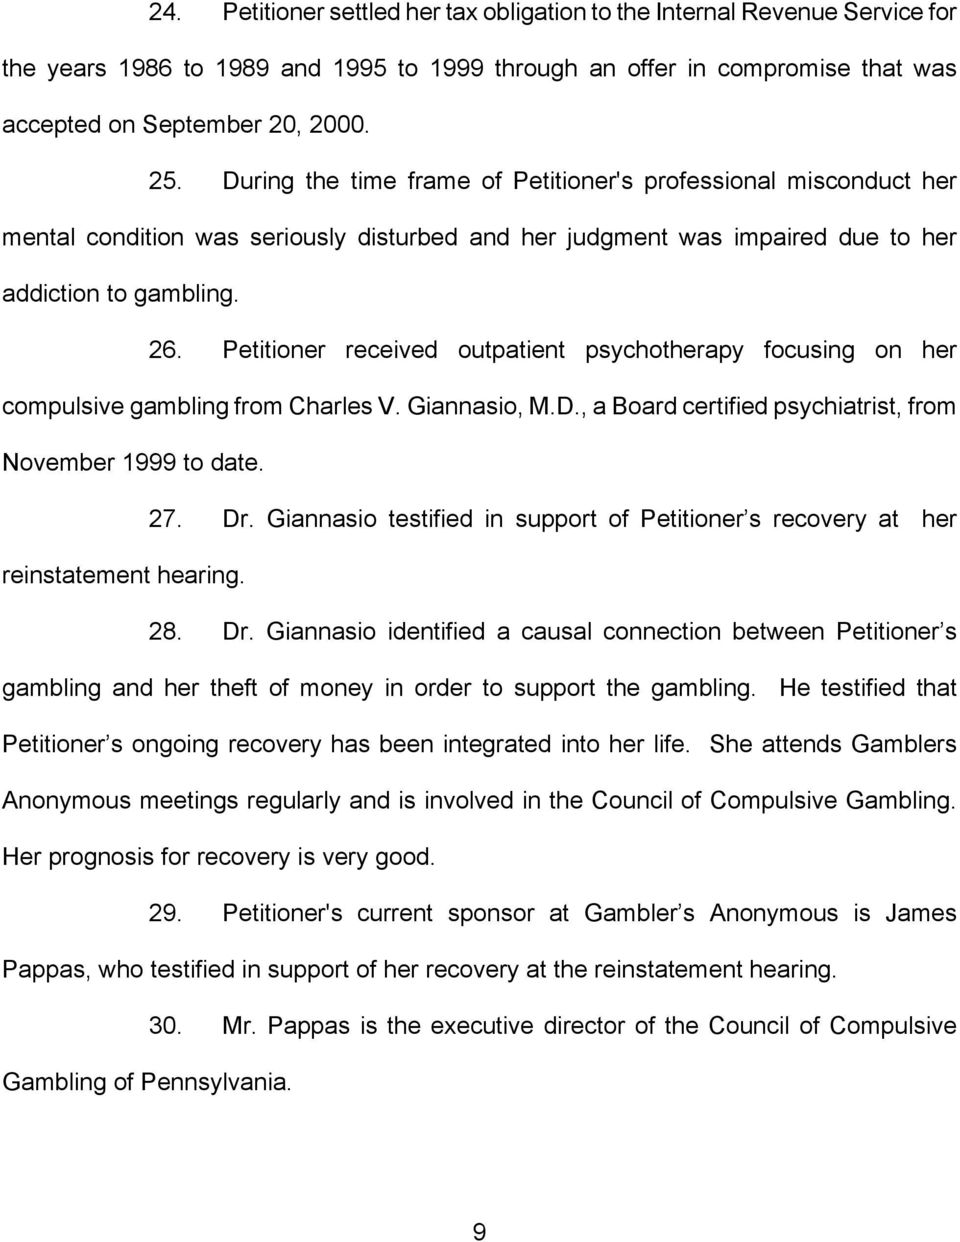 Petitioner received outpatient psychotherapy focusing on her compulsive gambling from Charles V. Giannasio, M.D., a Board certified psychiatrist, from November 1999 to date. 27. Dr.